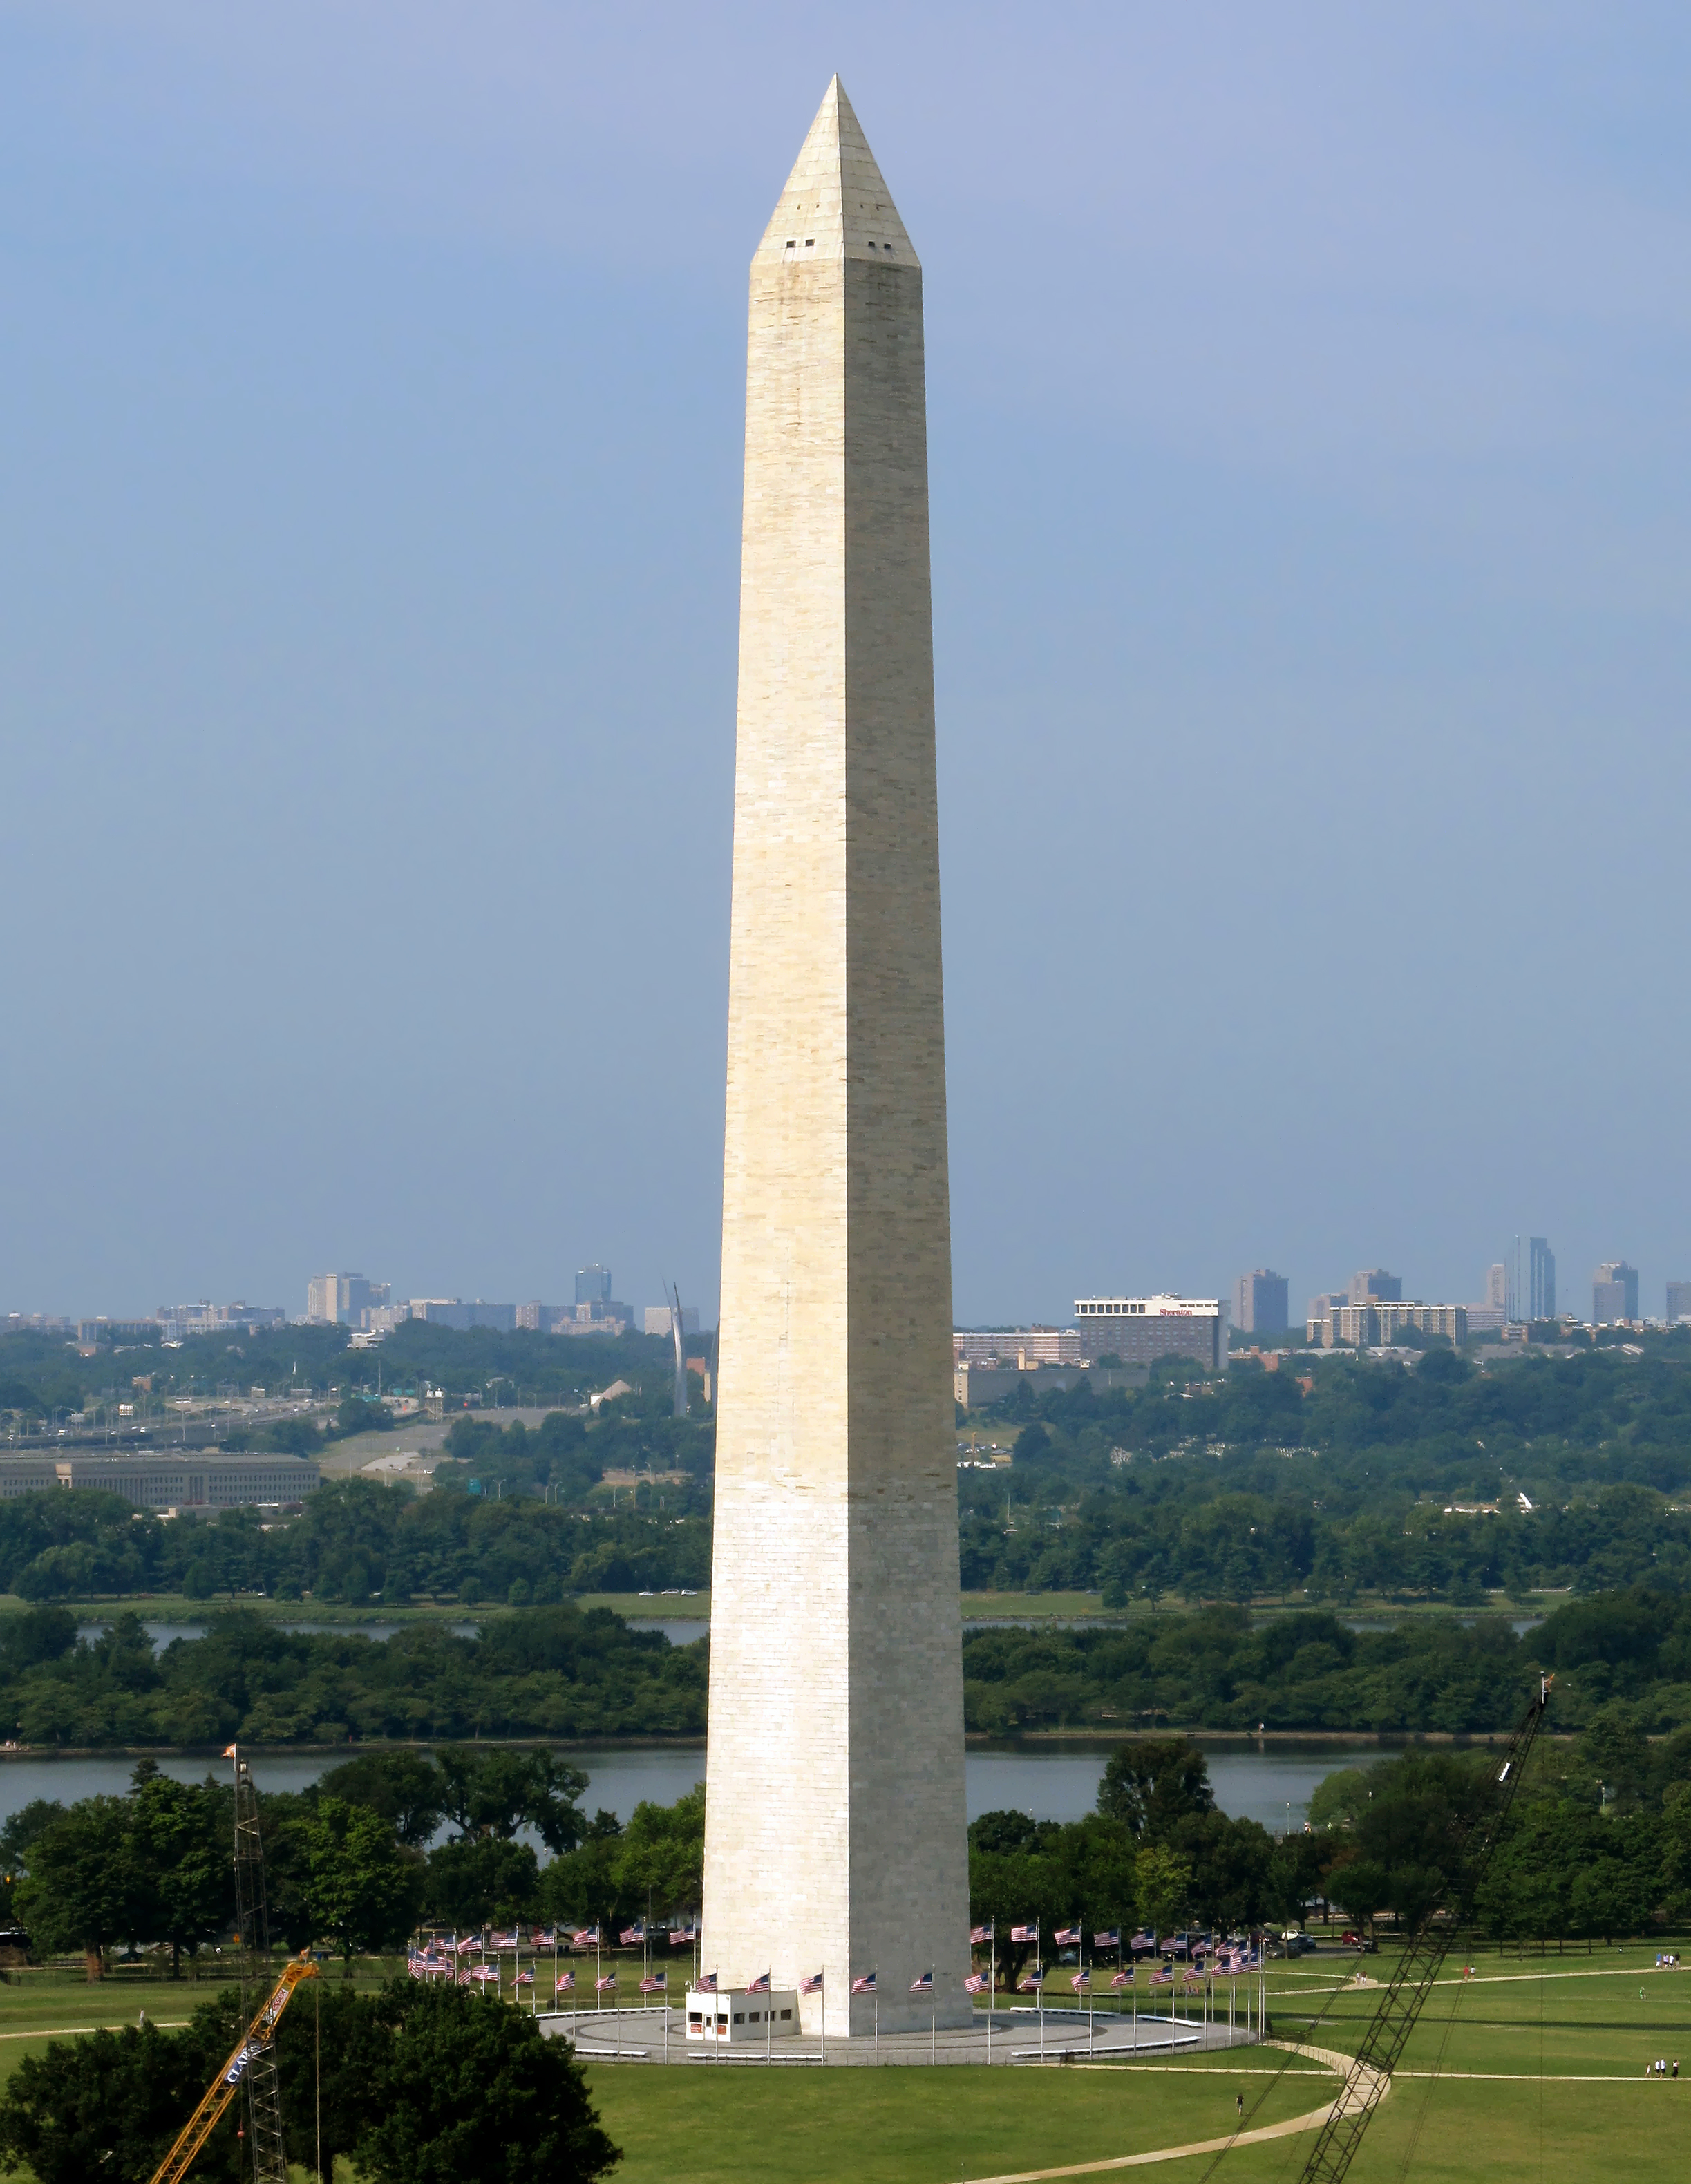 File:Washington Monument 2012.jpg